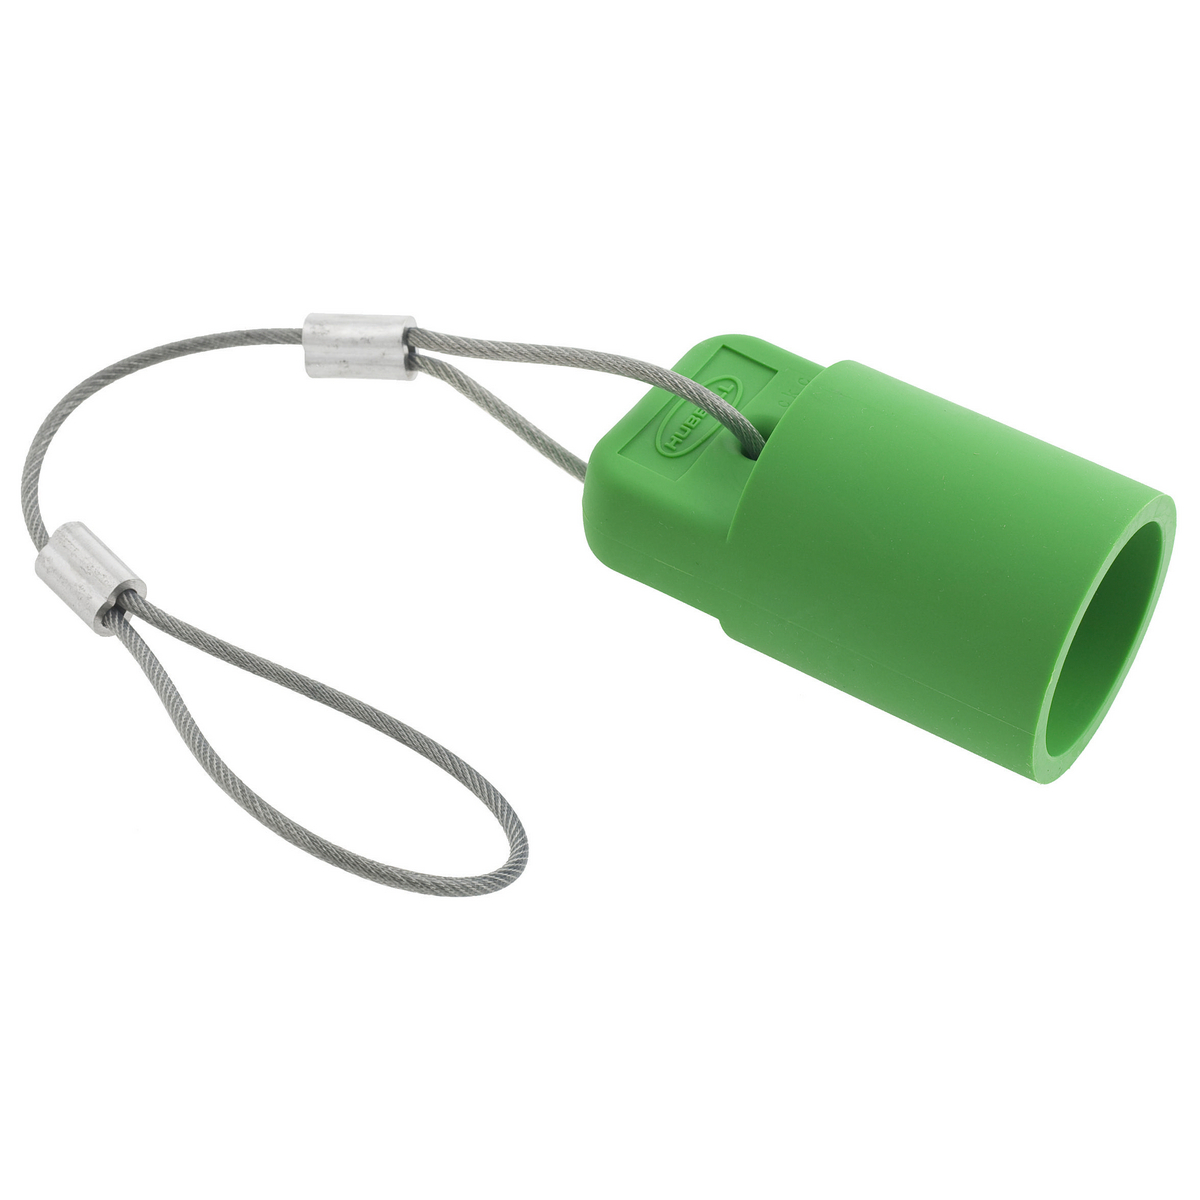 Hubbell HBLFCAPGN Green FeMale Cam Type Plug/Receptacle Protective Cap